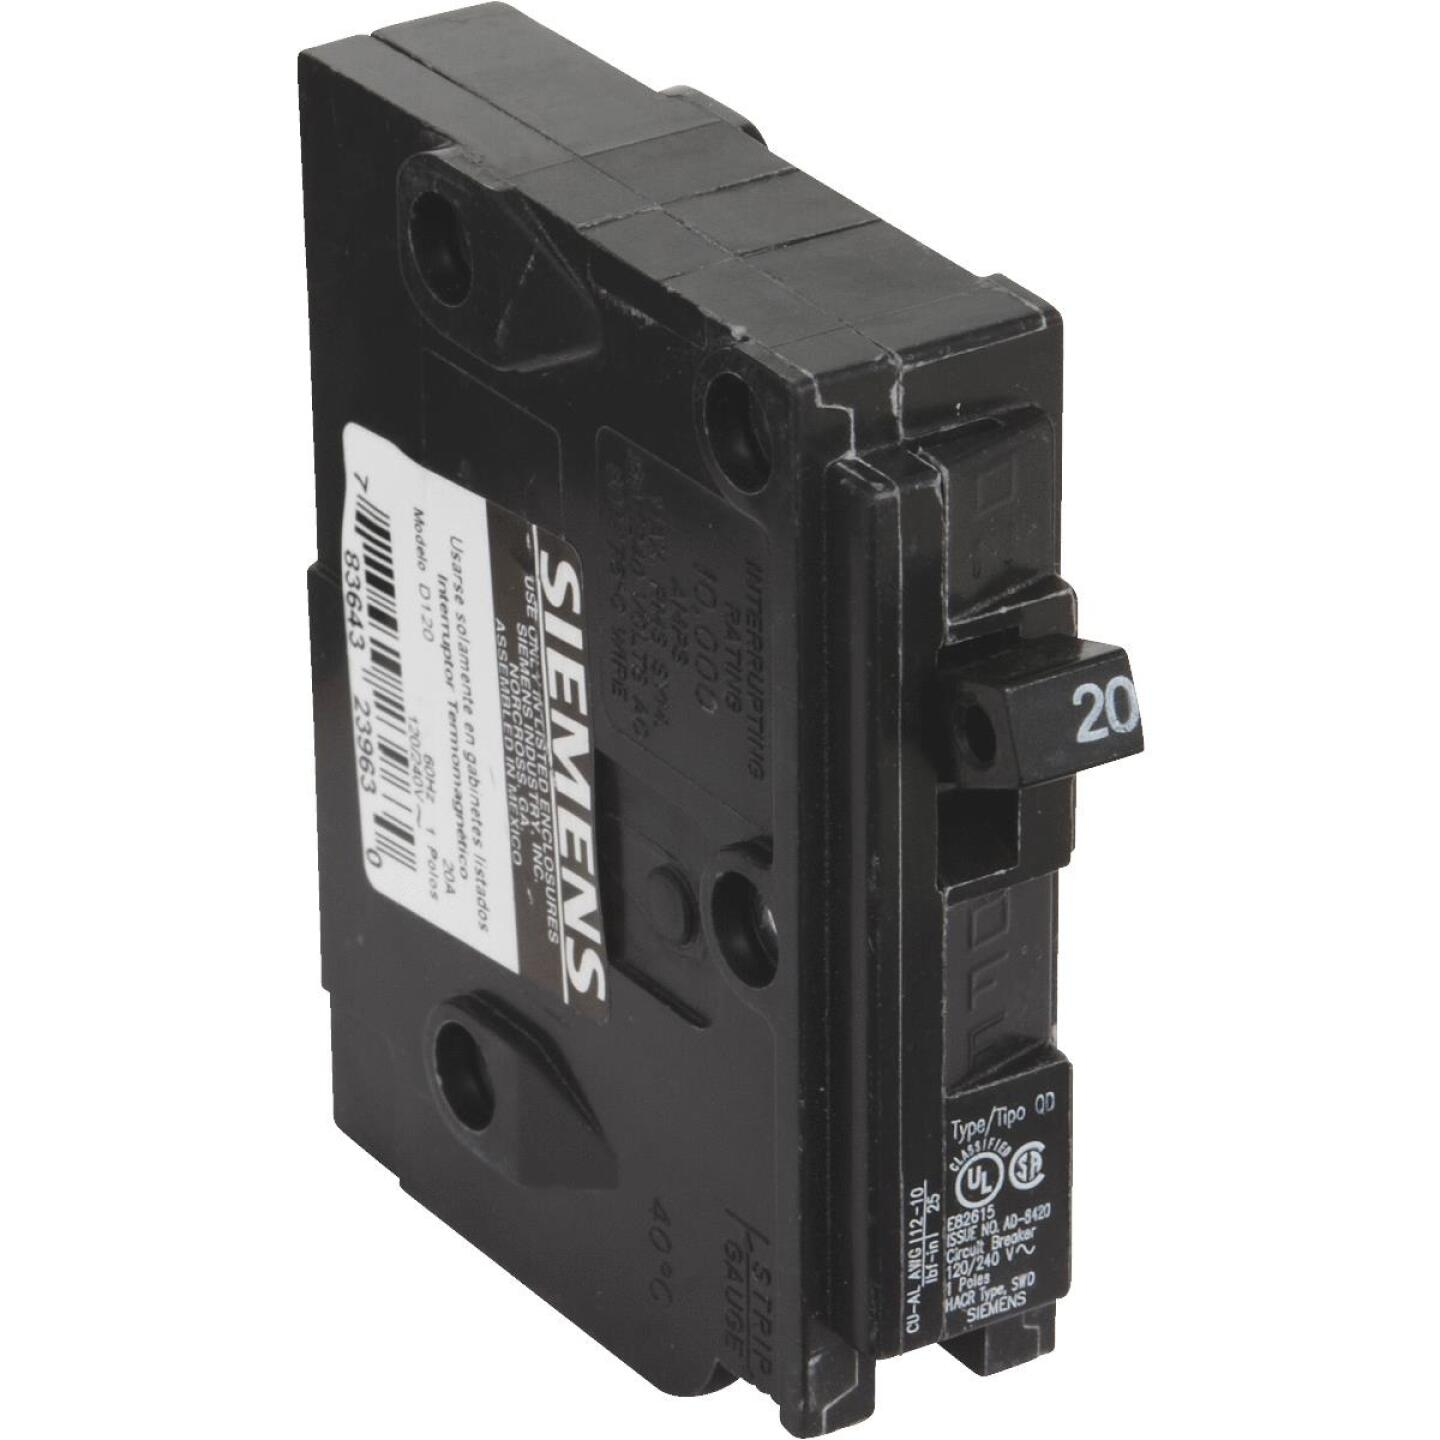 Connecticut Electric 20A Single-Pole Standard Trip Packaged Replacement Circuit Breaker For Square D Image 2